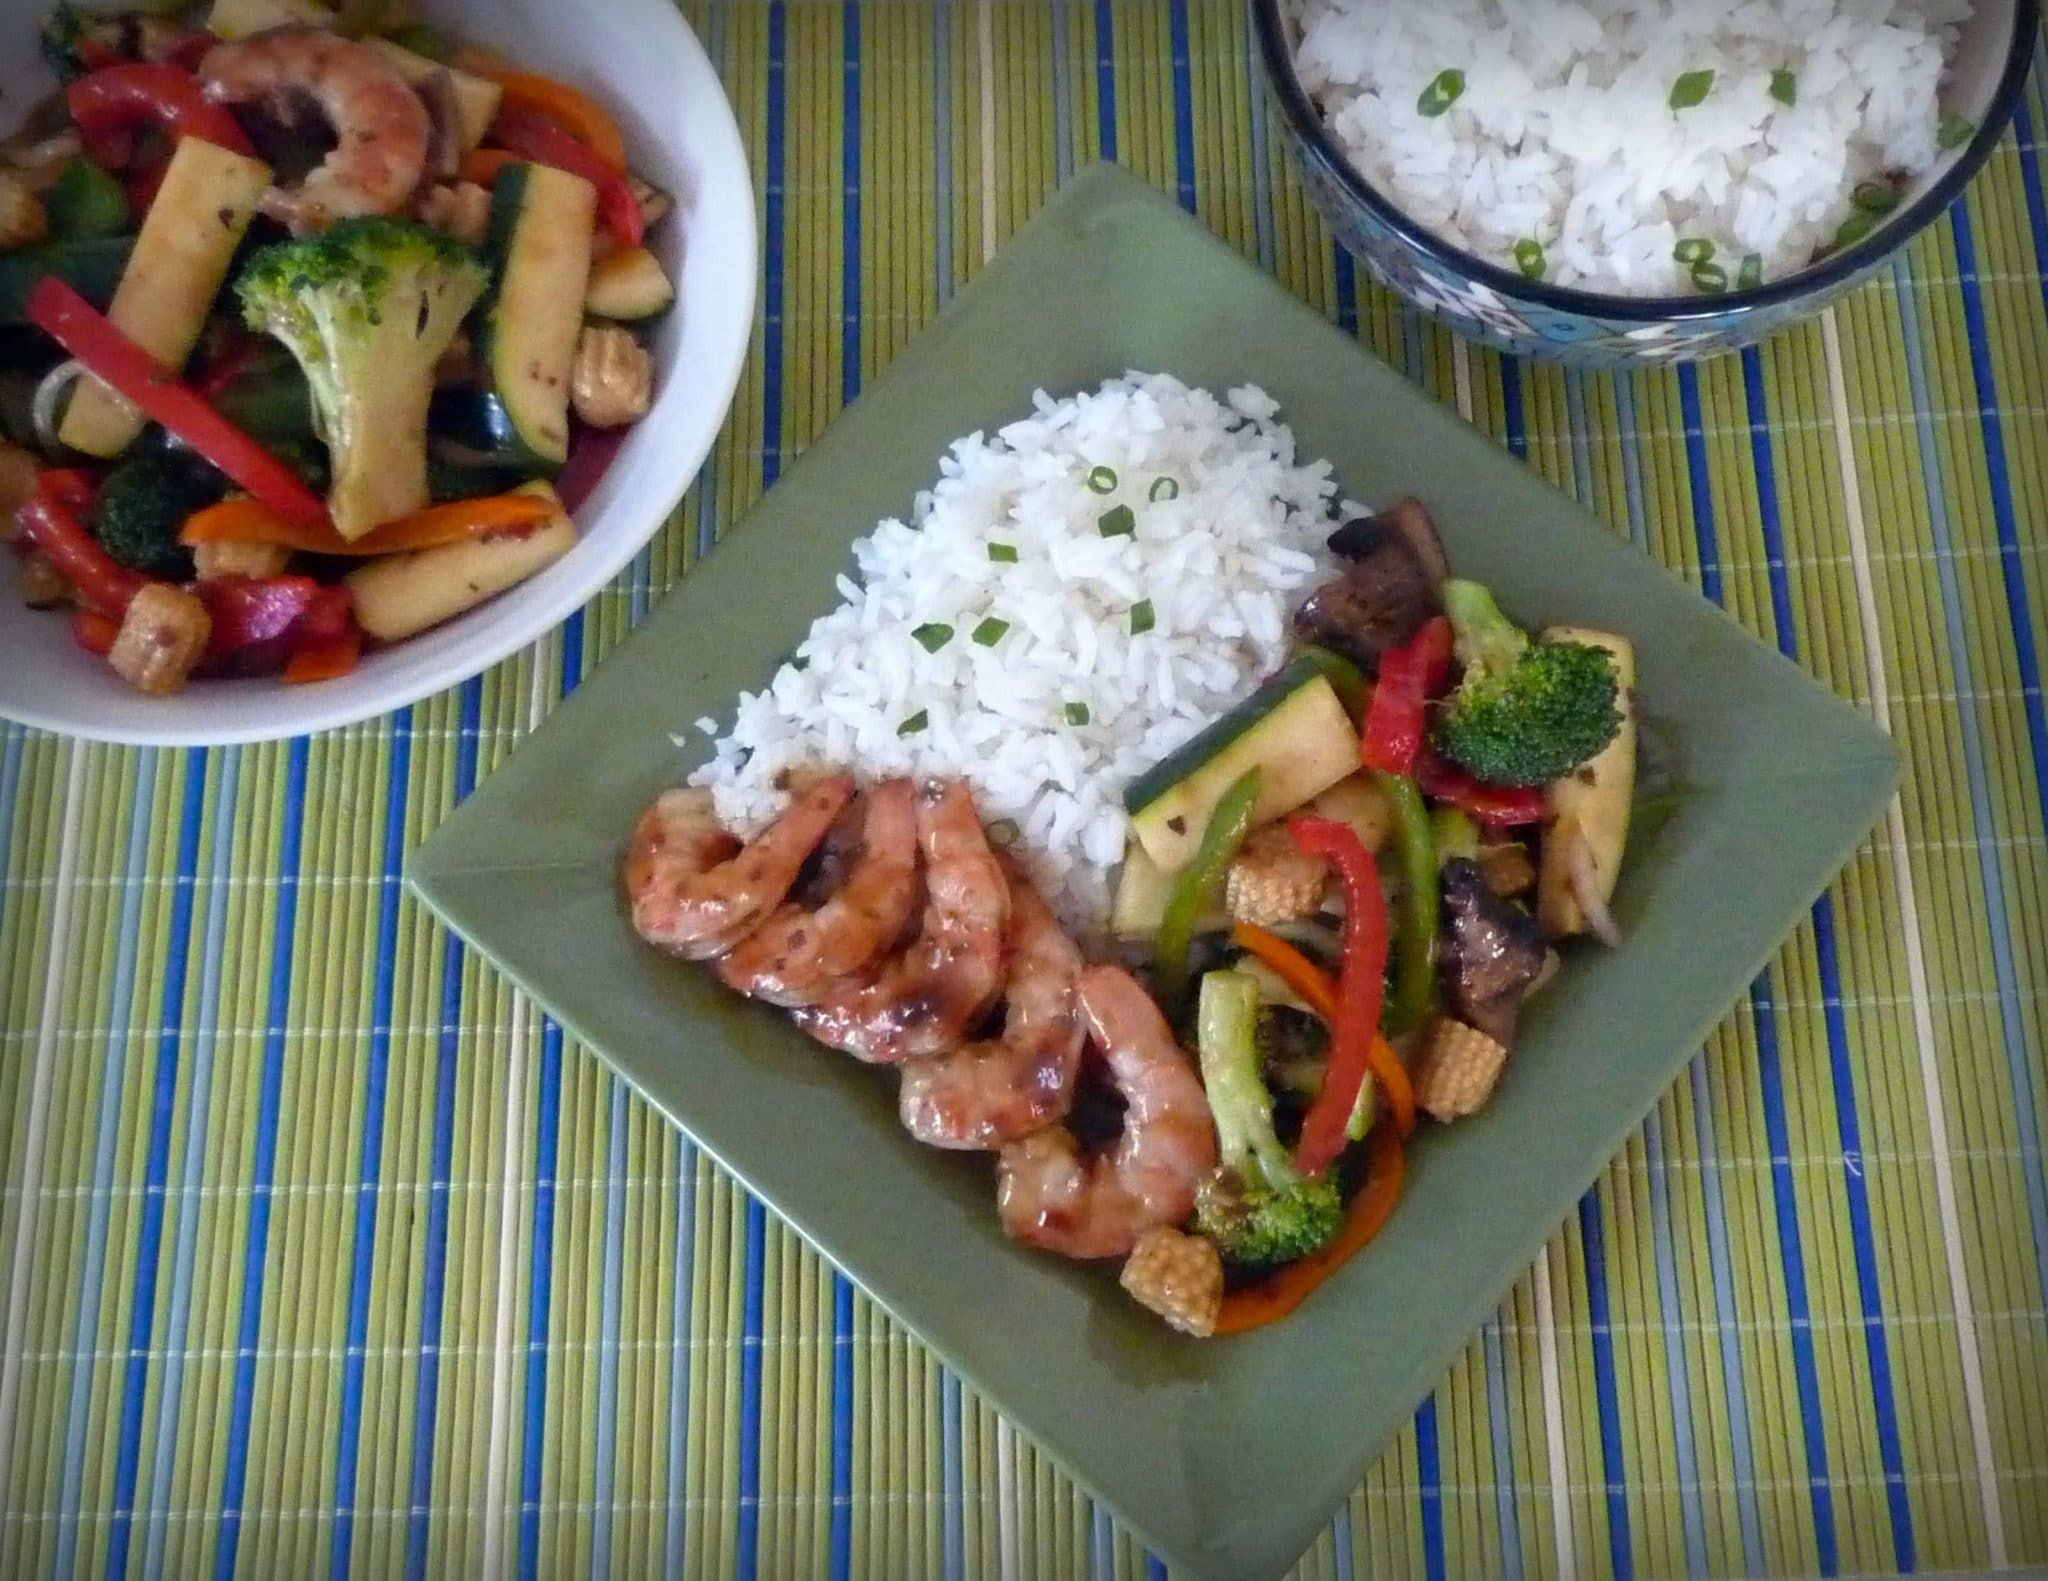 #Thai Brown #Curry #Shrimp with #Vegetable #StirFry in light sauce